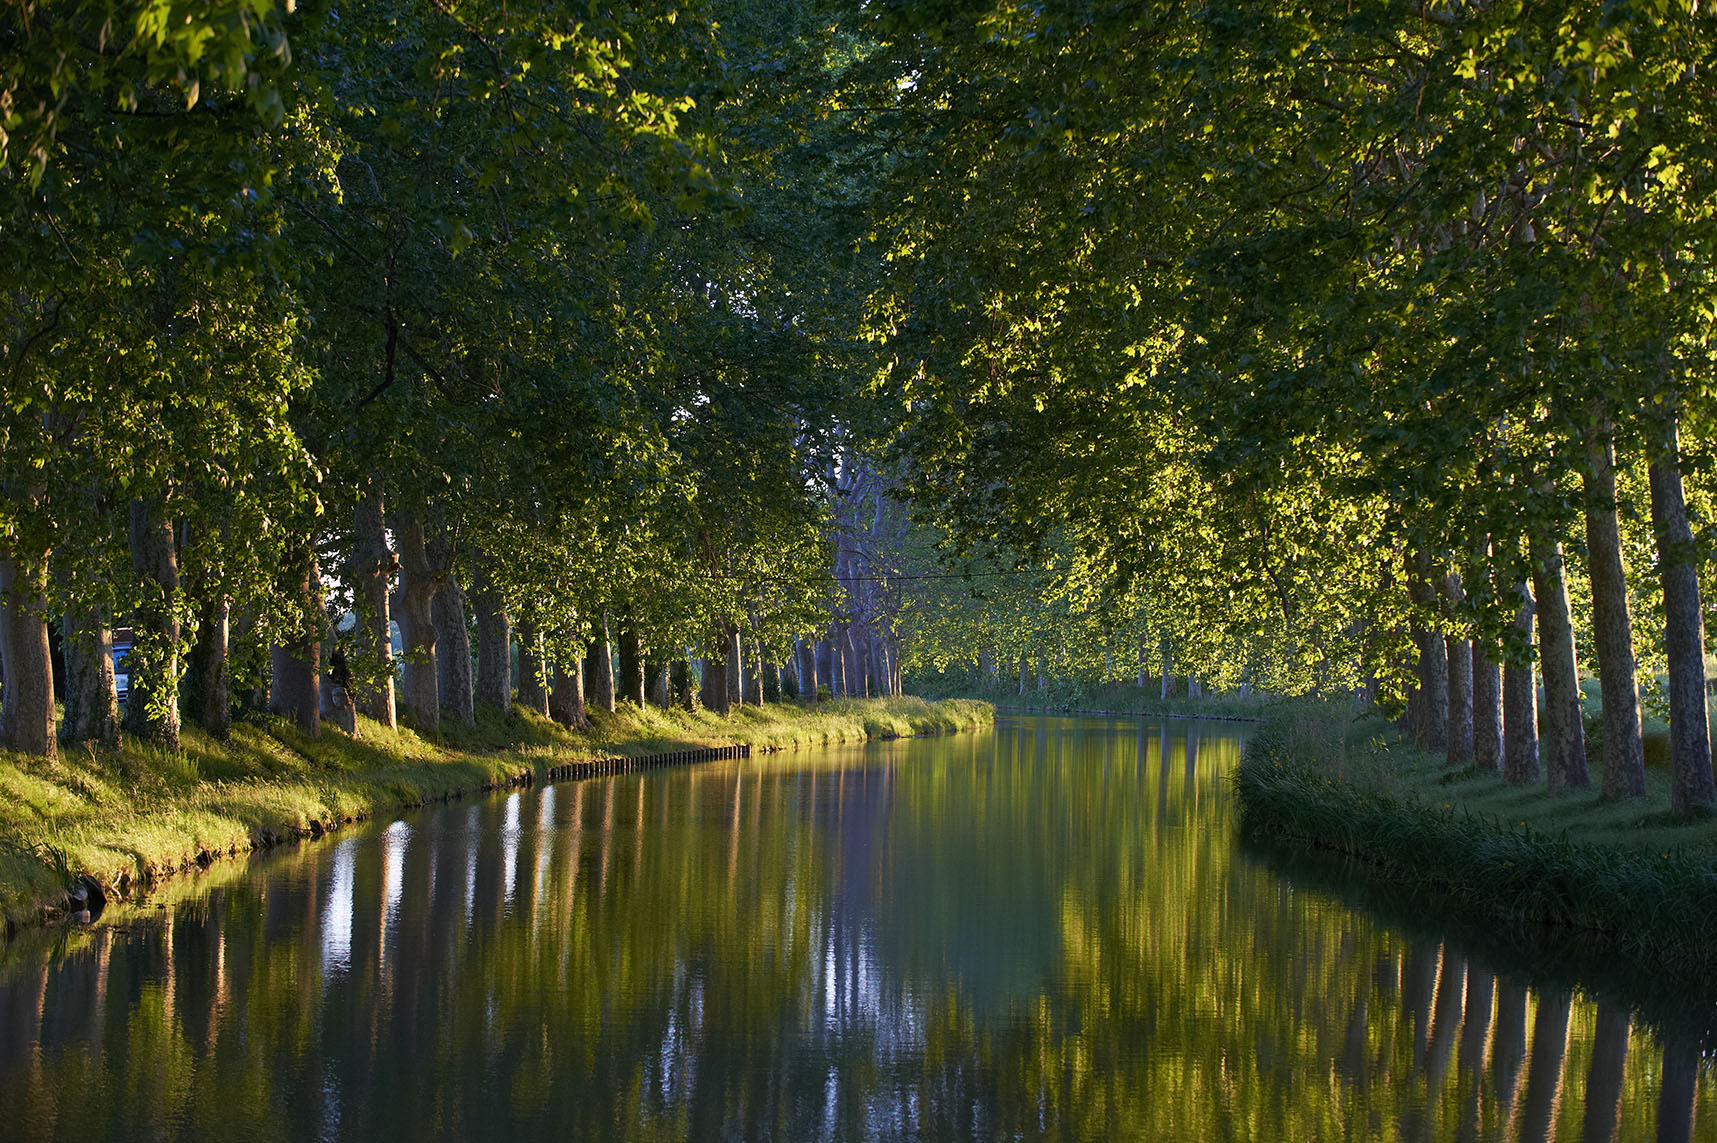 France, Languedoc-Roussillon, Aude (11), Canal du Midi, tree lined canal